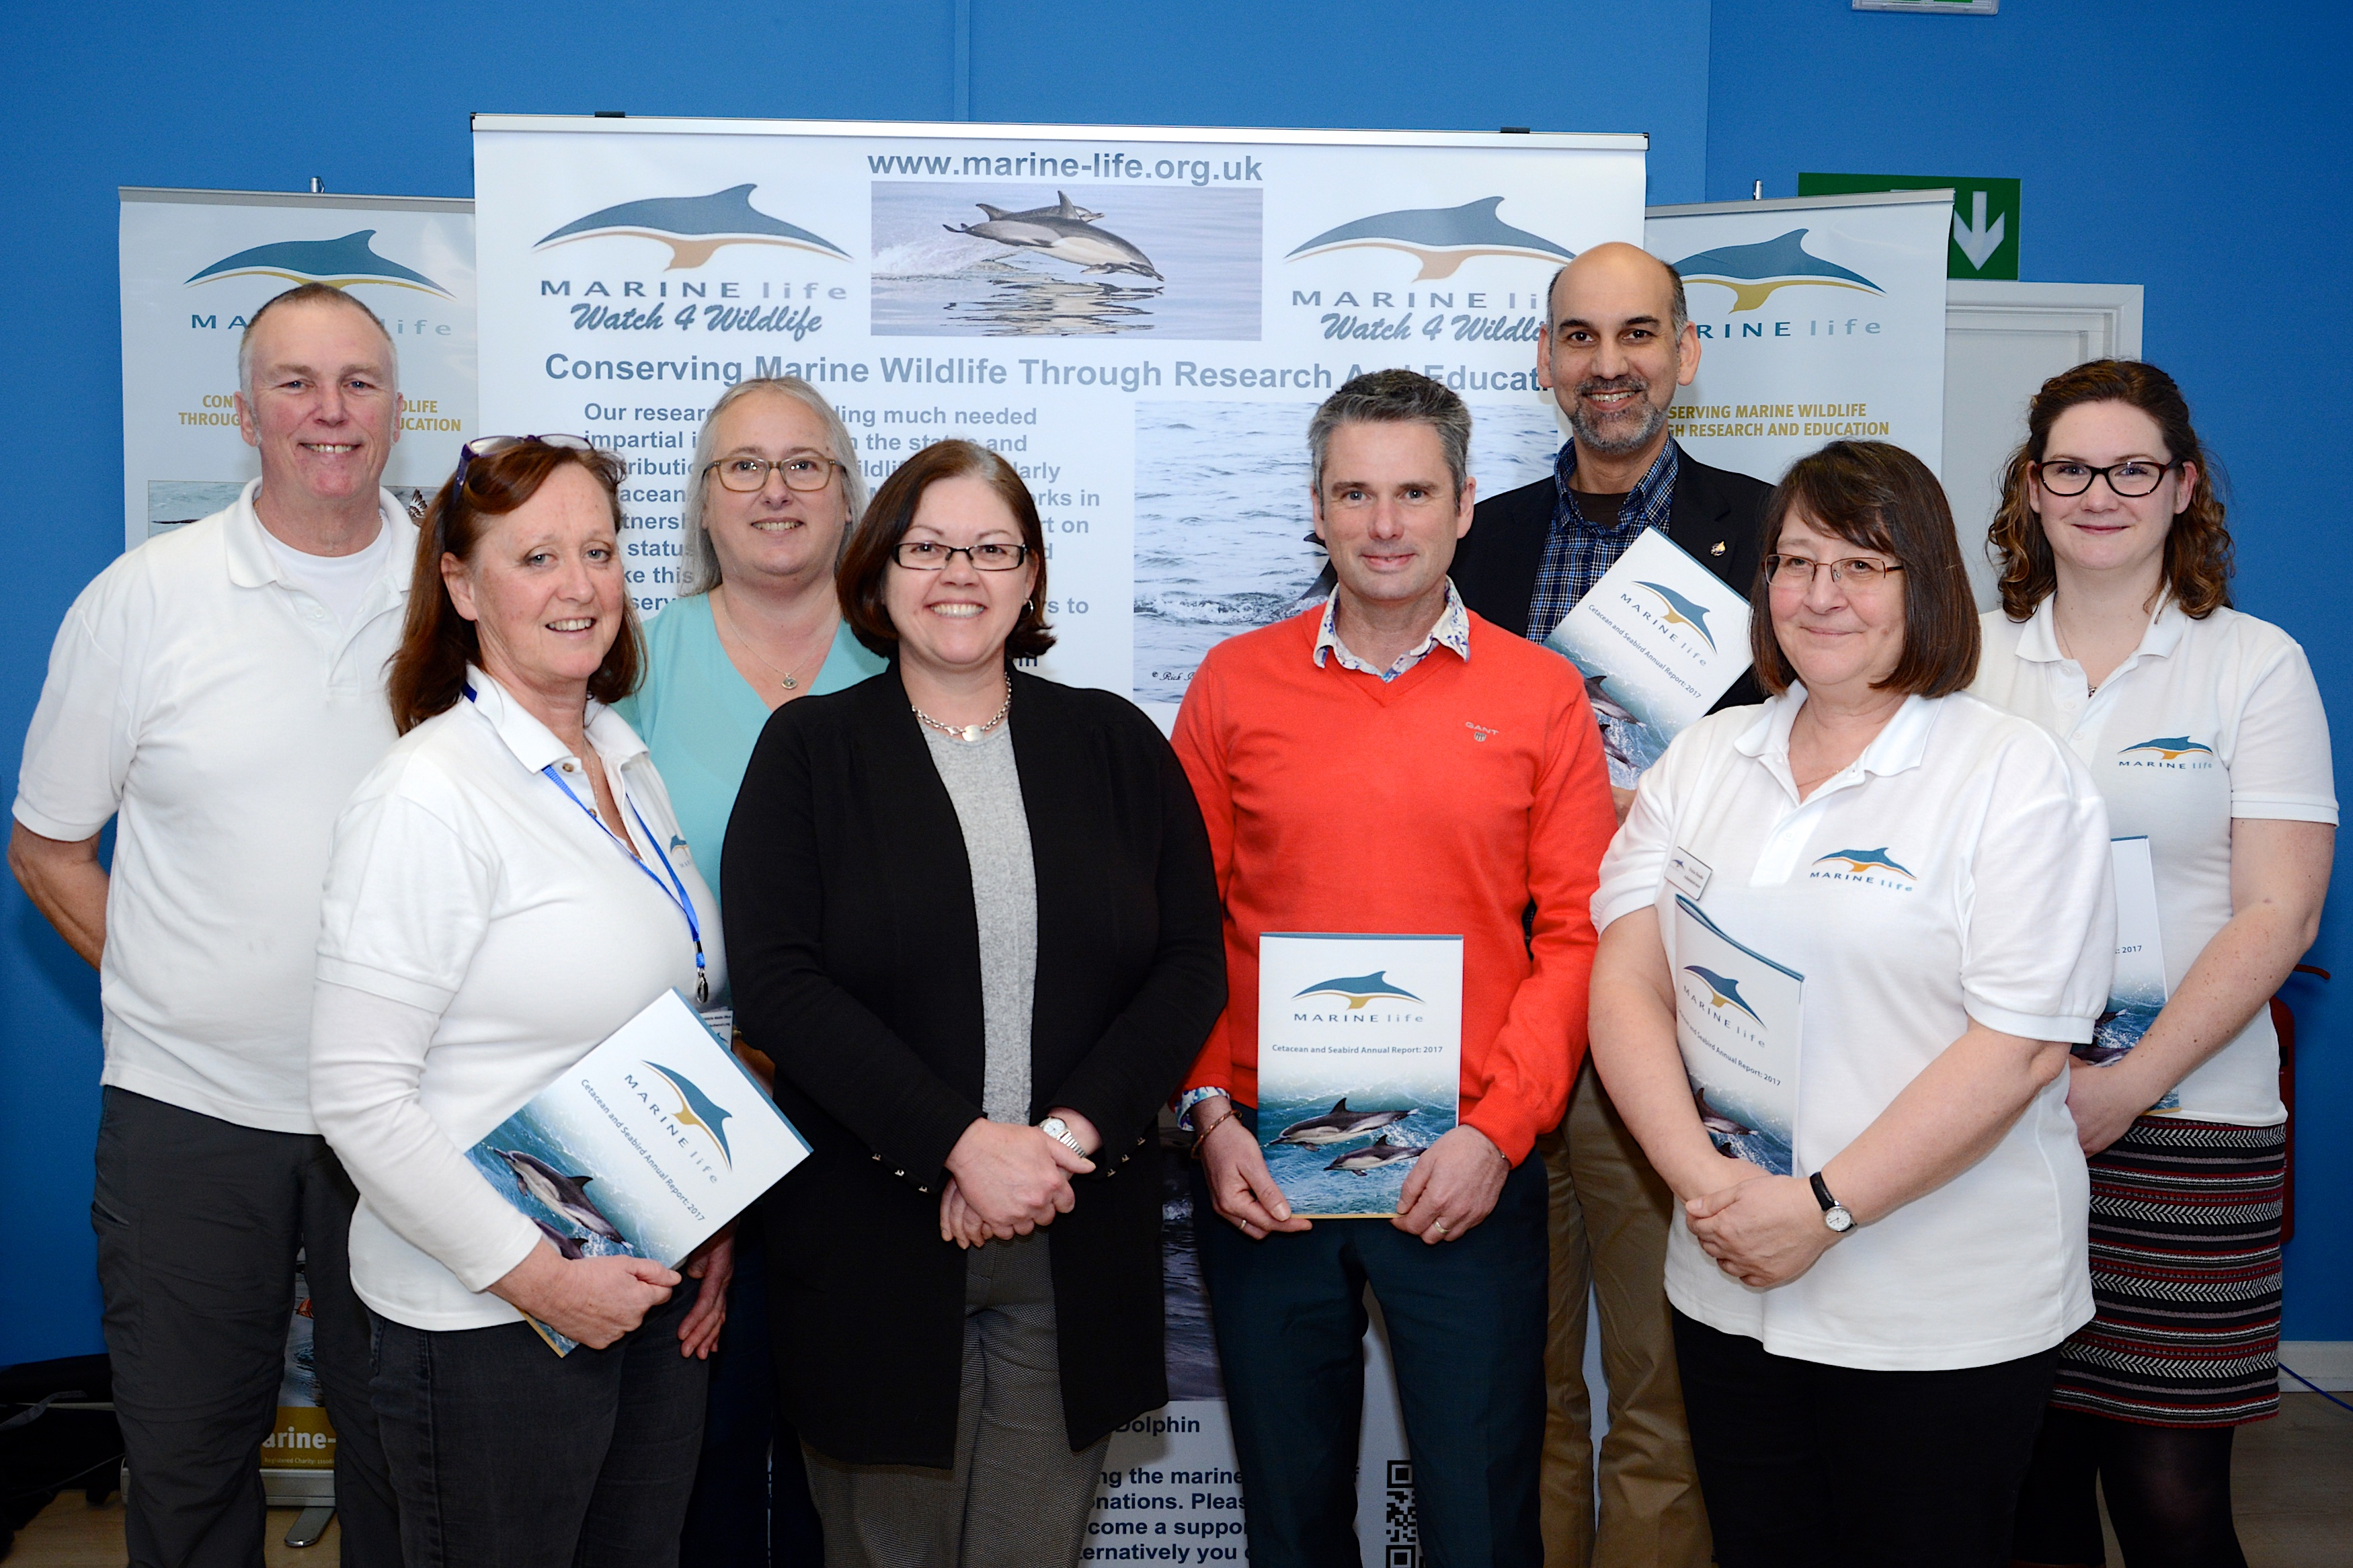 Dolphin Shopping Centre hosts MARINElife's 'Dolphin Day'